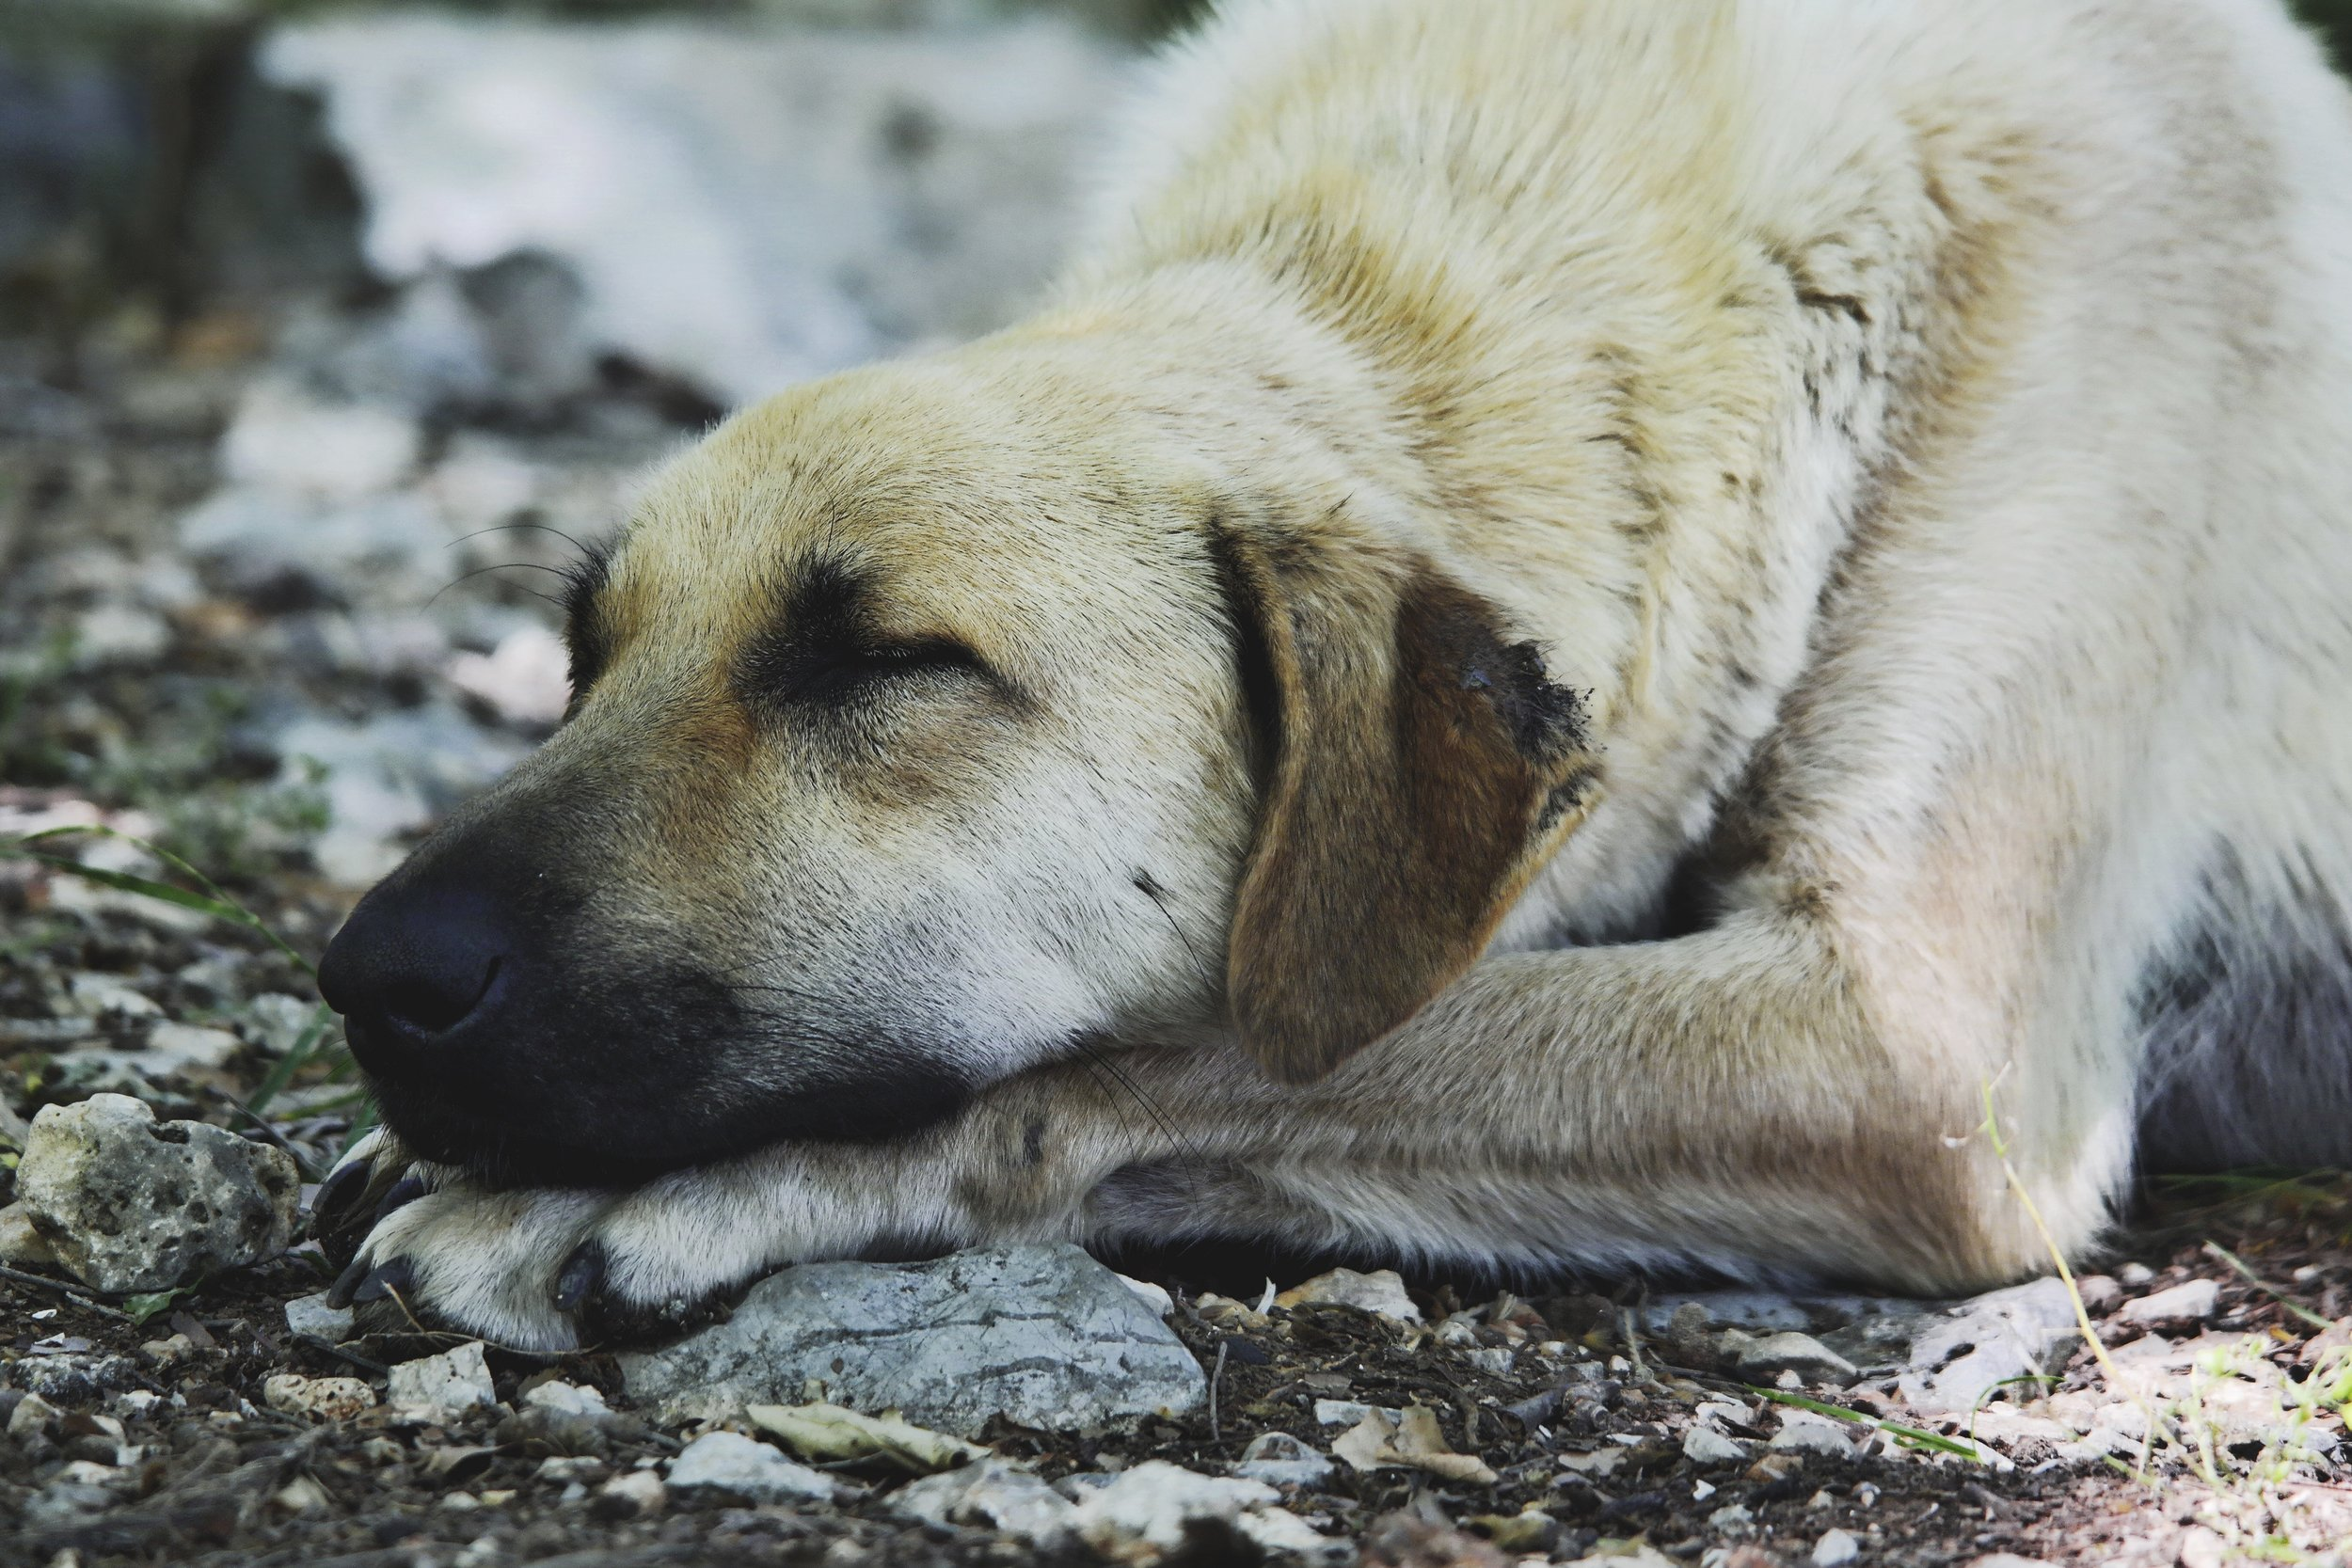 boss-fight-free-high-quality-stock-images-photos-photography-dog-resting-outside.jpg